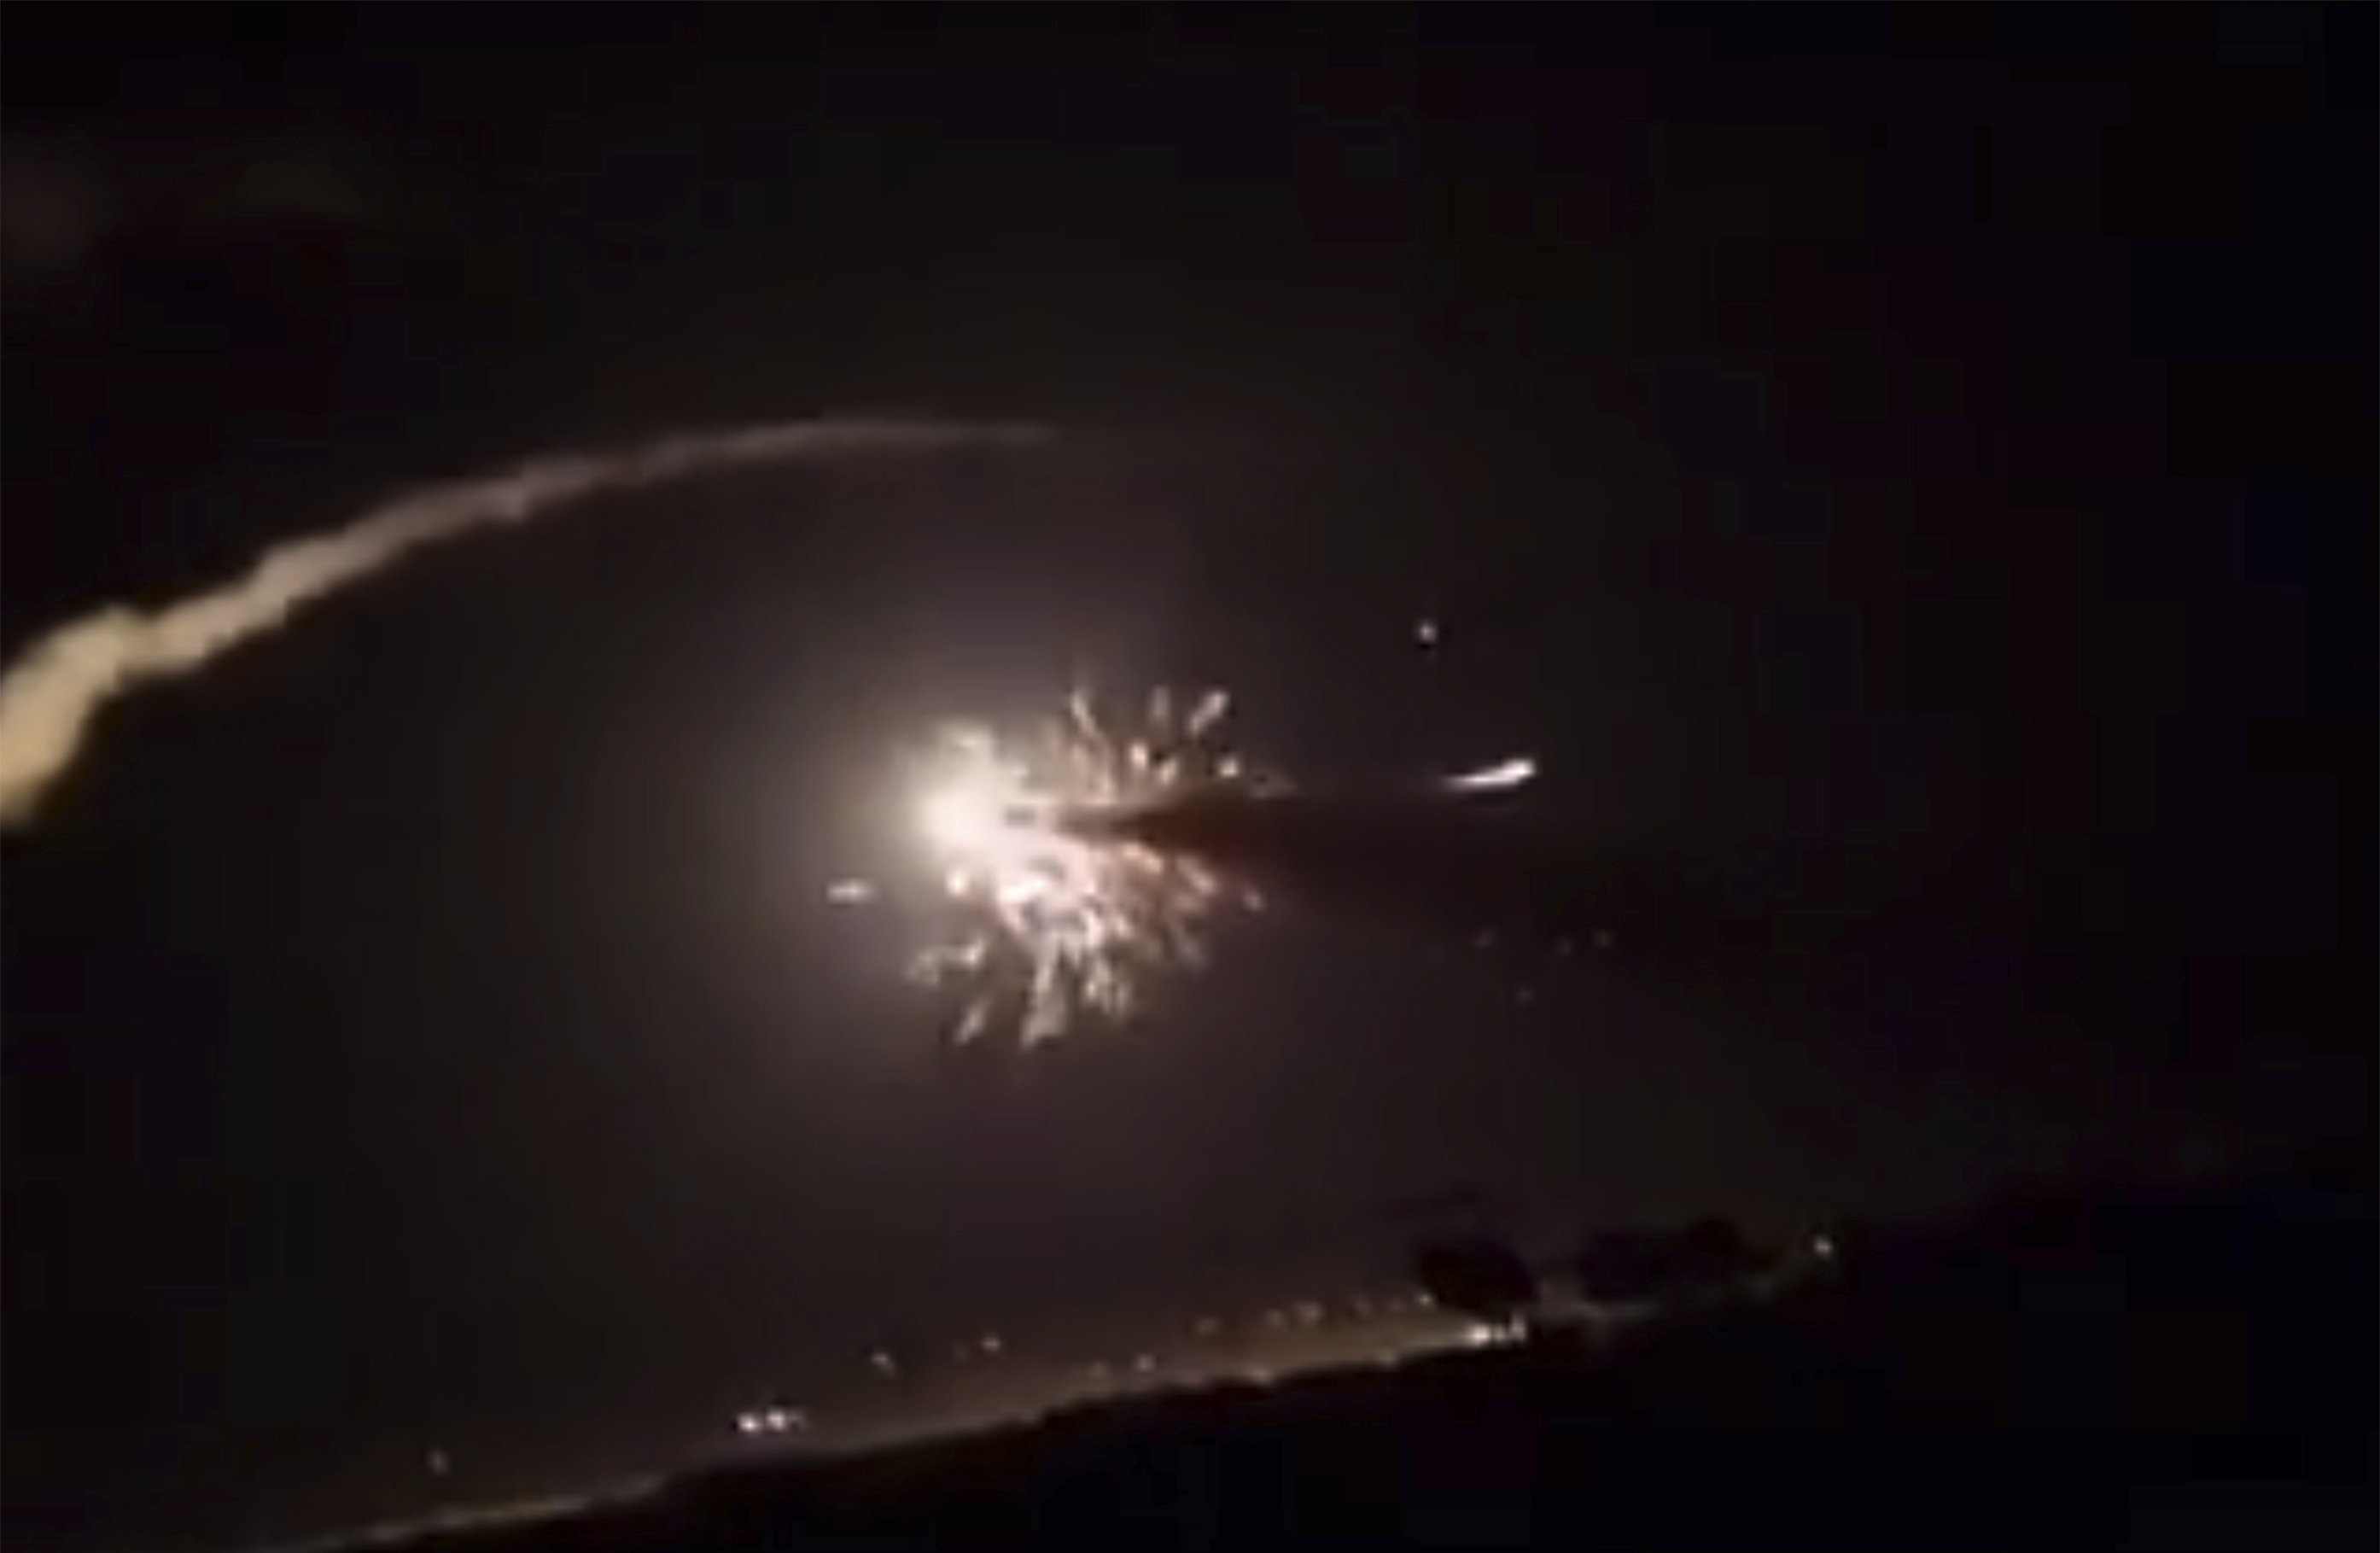 This frame grab from a video provided by the Syrian official news agency SANA shows missiles flying into the sky near Damascus, Syria, Tuesday, Dec. 25, 2018.